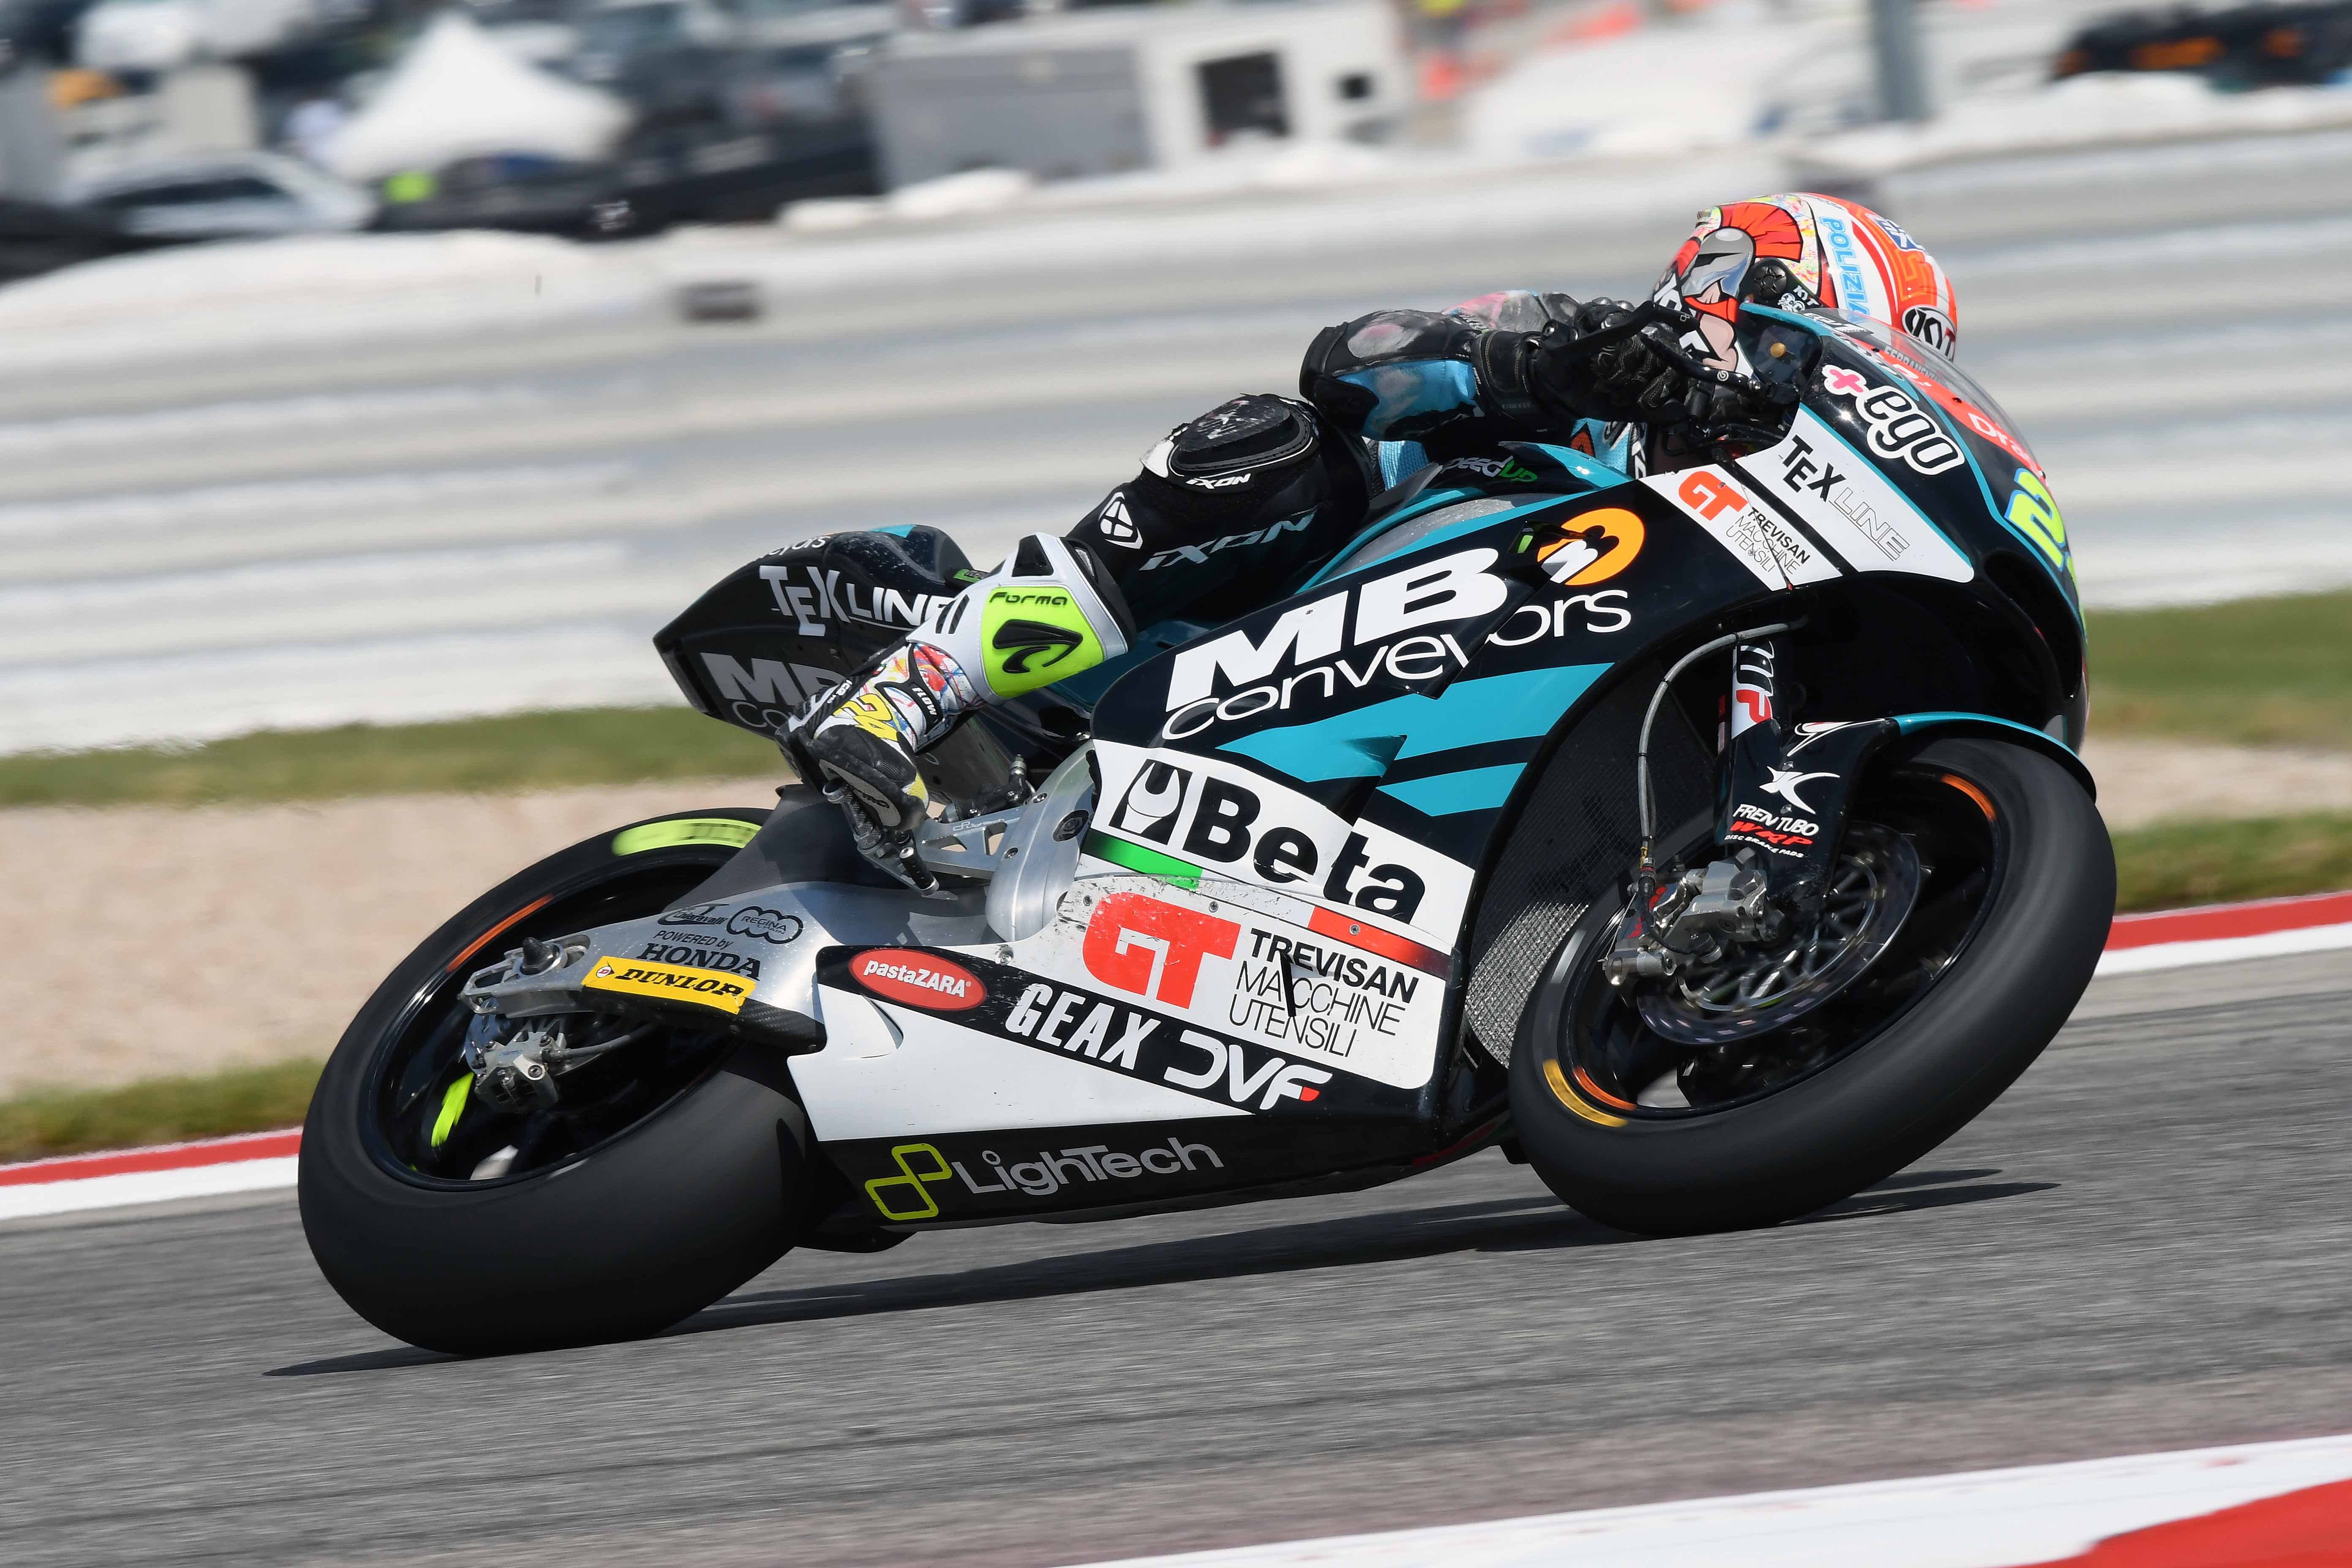 SESTA E UNDICESIMA FILA PER I PILOTI DI SPEED UP TEAM NEL GP OF THE AMERICAS AD AUSTIN